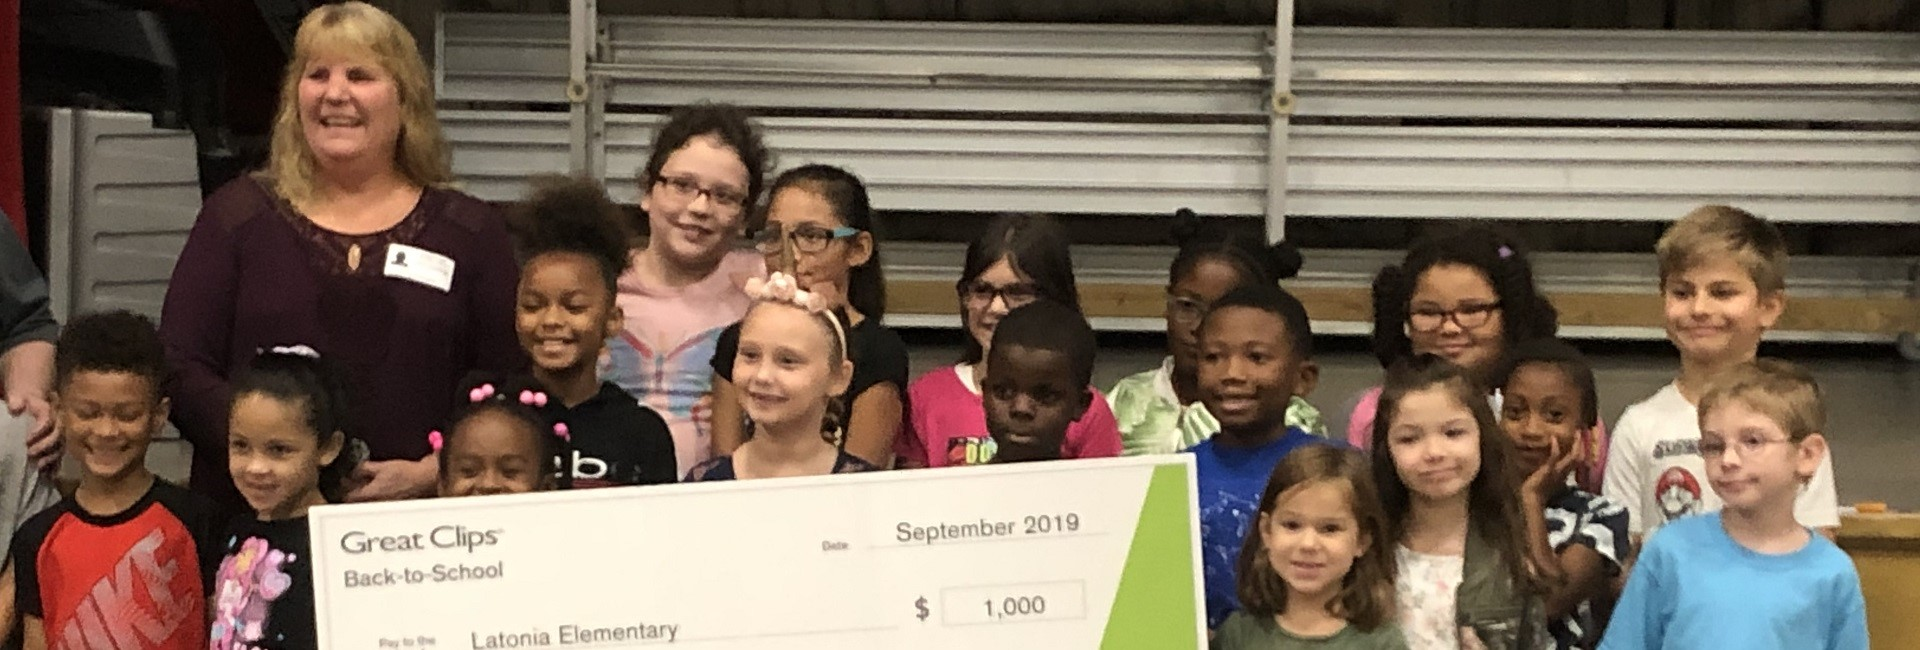 Great Clips Donates $1,000 to Latonia Elementary